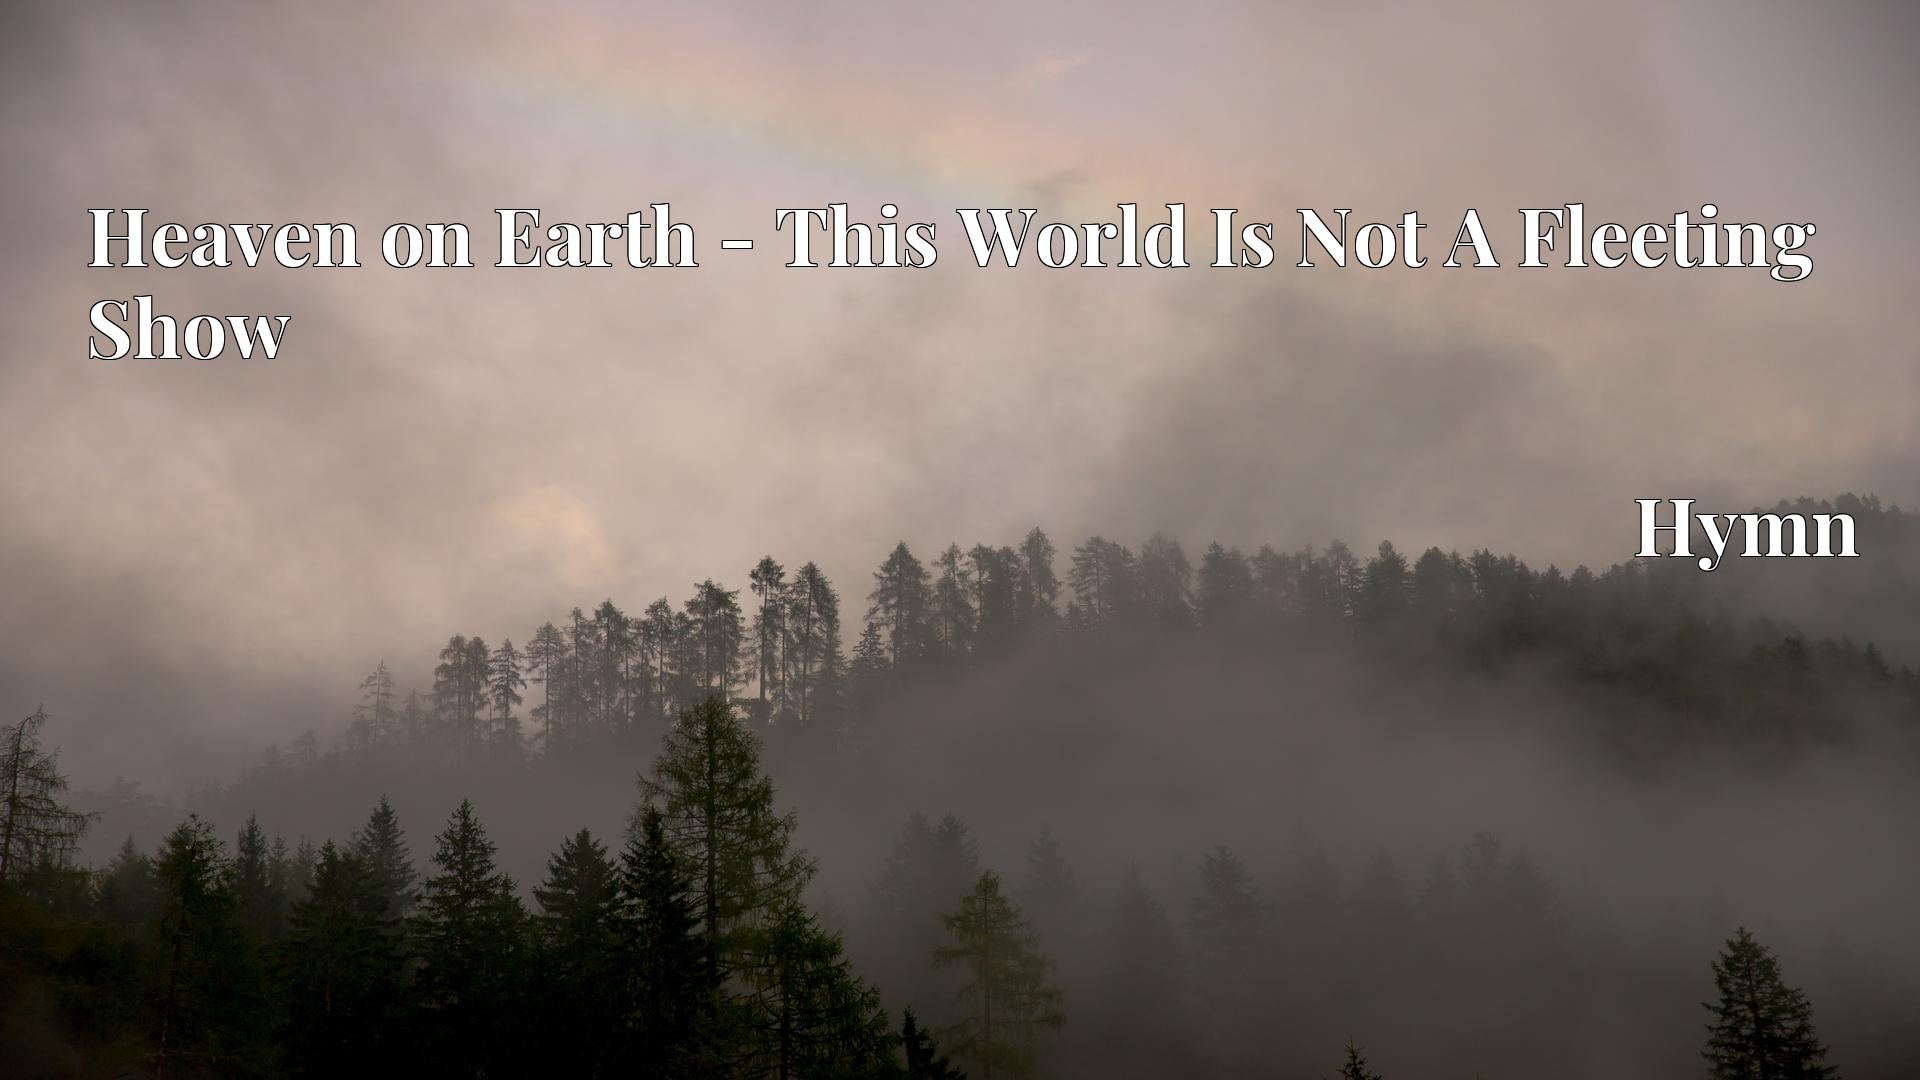 Heaven on Earth - This World Is Not A Fleeting Show - Hymn